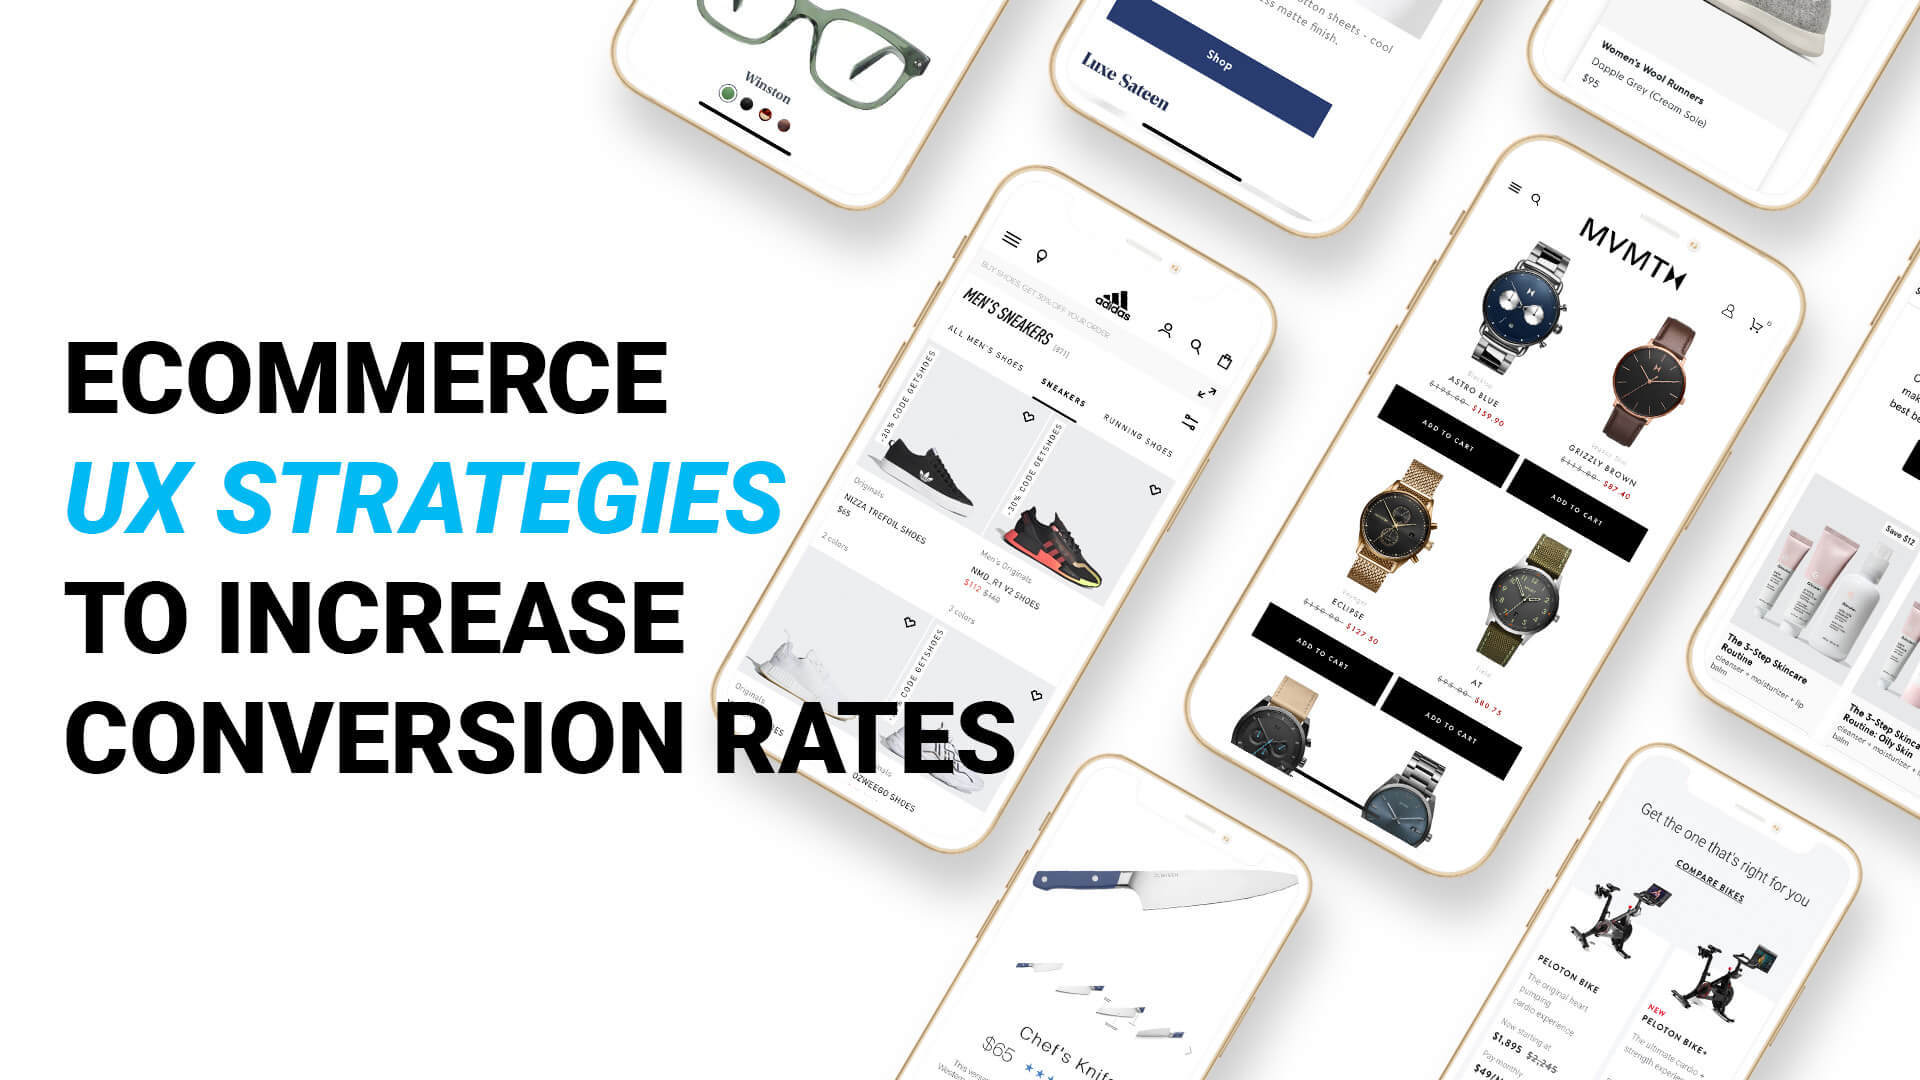 Ecommerce UX strategies to increase conversion rates